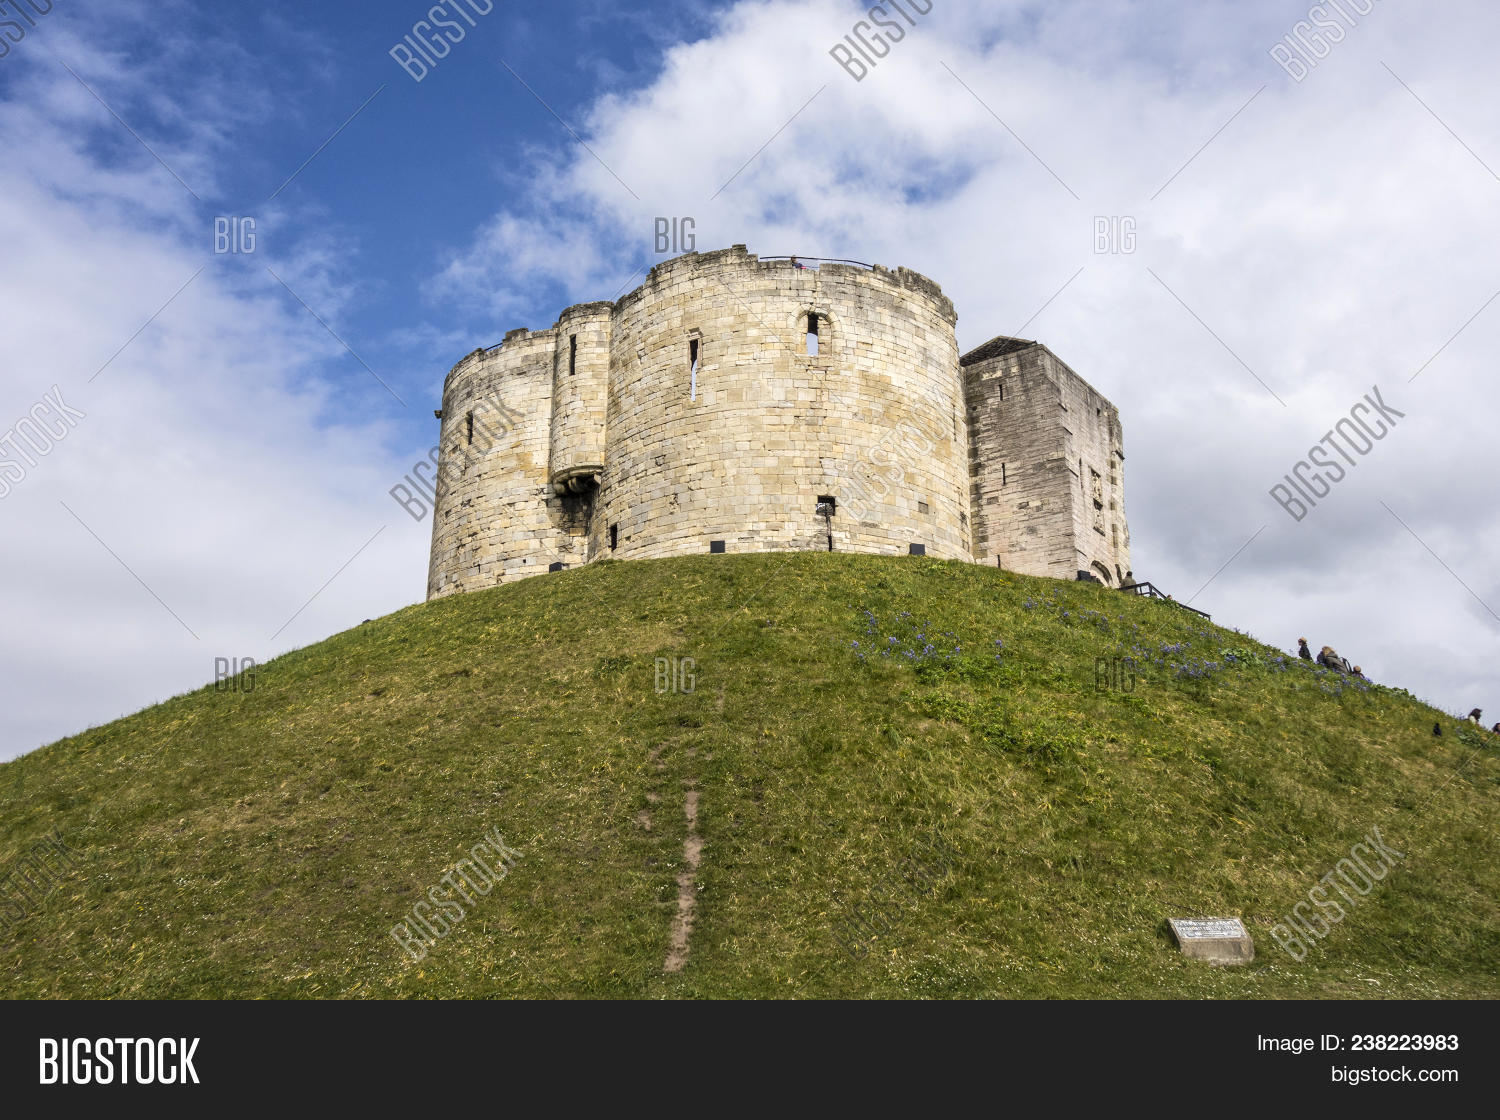 Wide Angle Shot York Image & Photo (Free Trial) | Bigstock